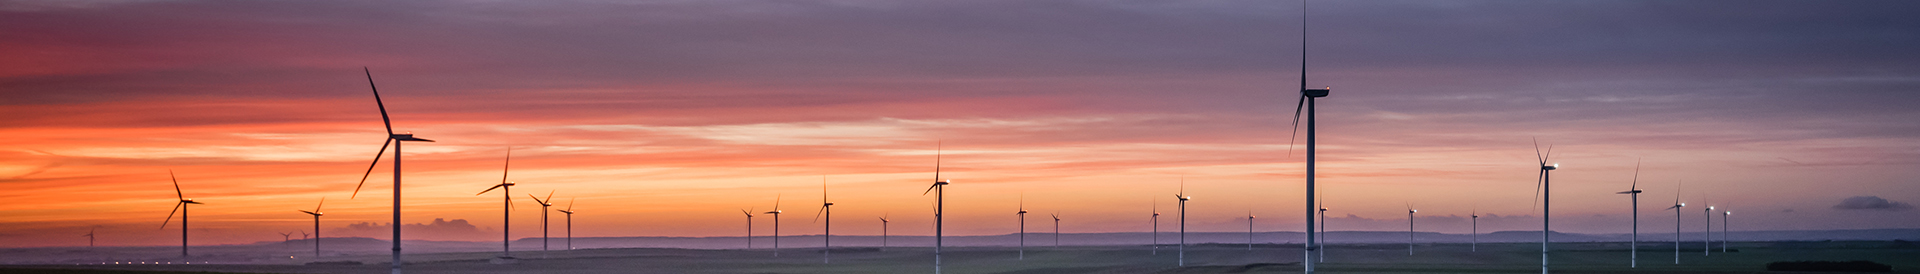 Panorama of wind turbines